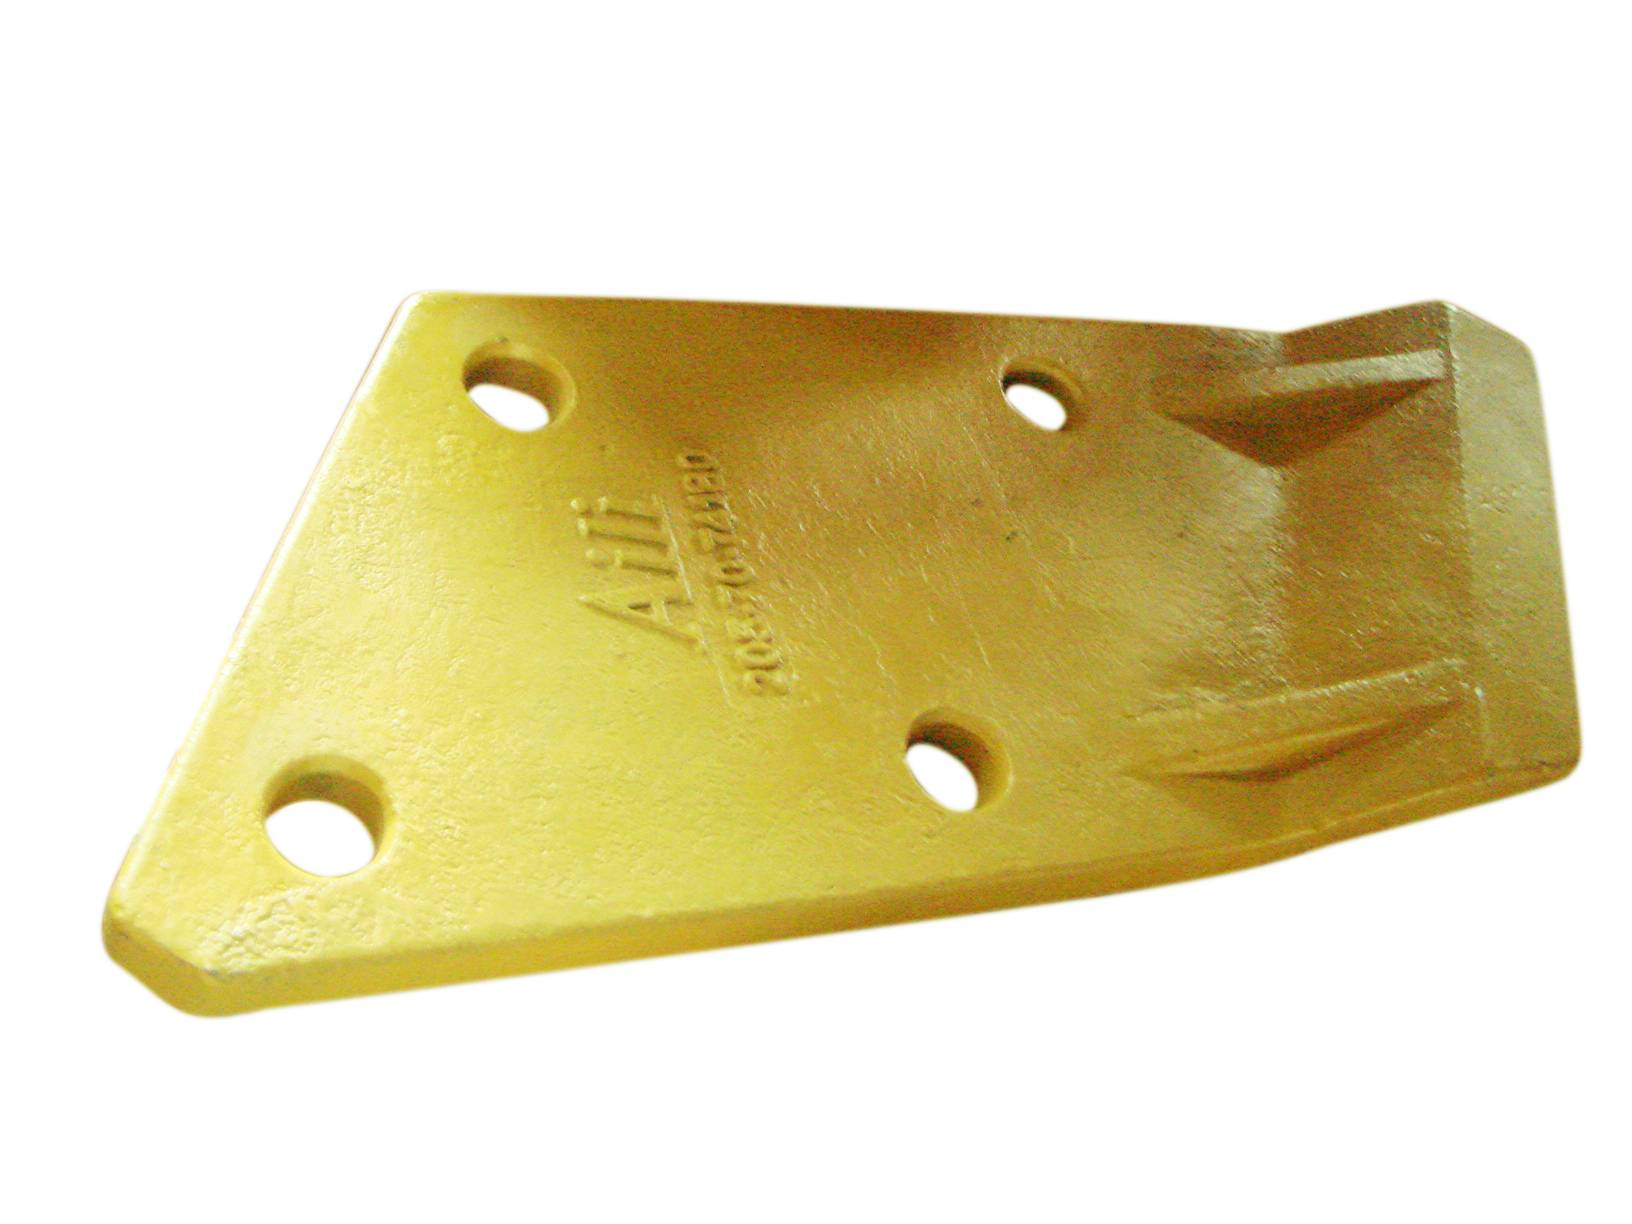 205-70-74180 205-70-74190 excavator PC200 side cutter tooth